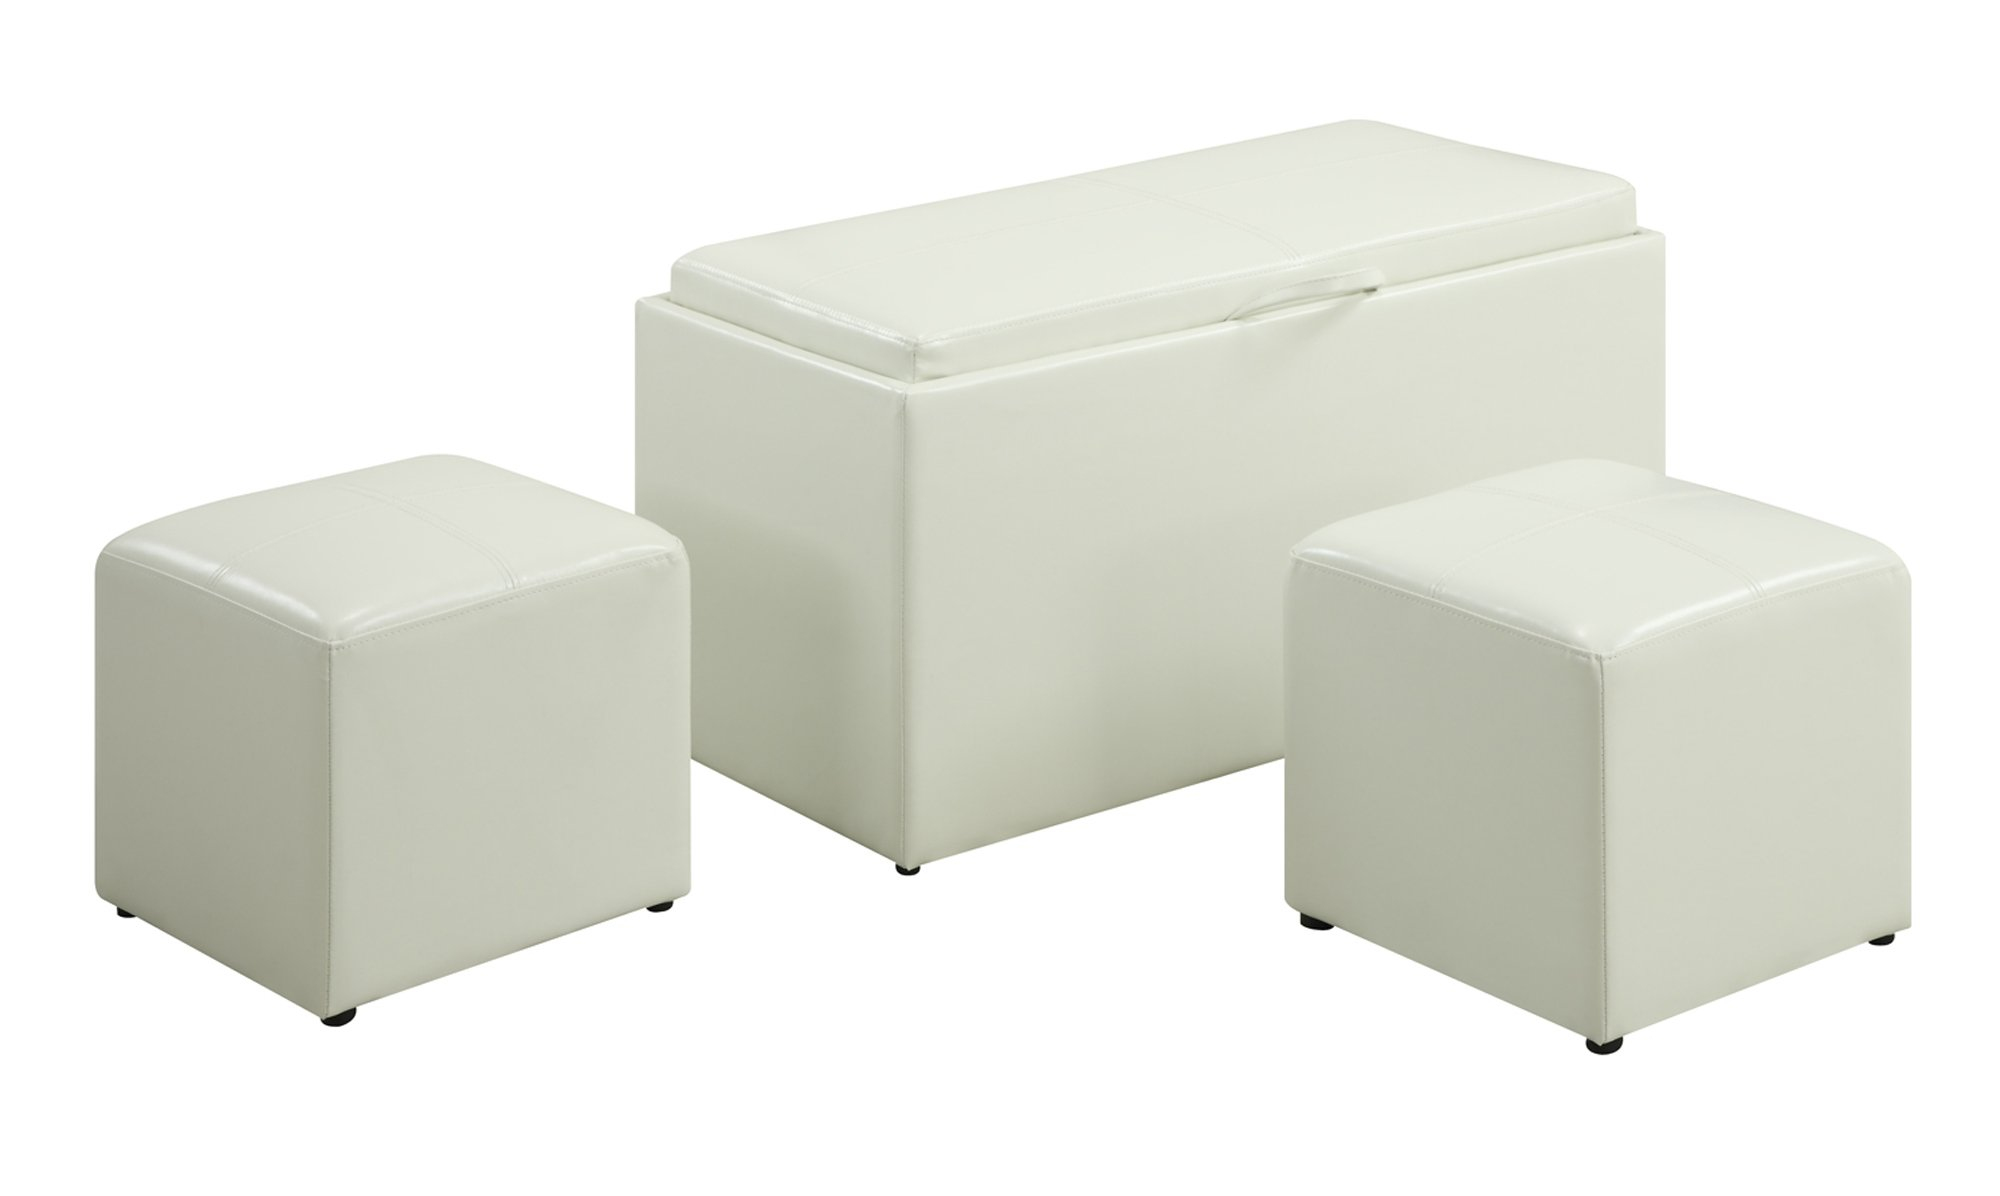 Convenience Concepts Designs4Comfort Sheridan Faux Leather Storage Bench with 2 Side Ottomans, White by Convenience Concepts